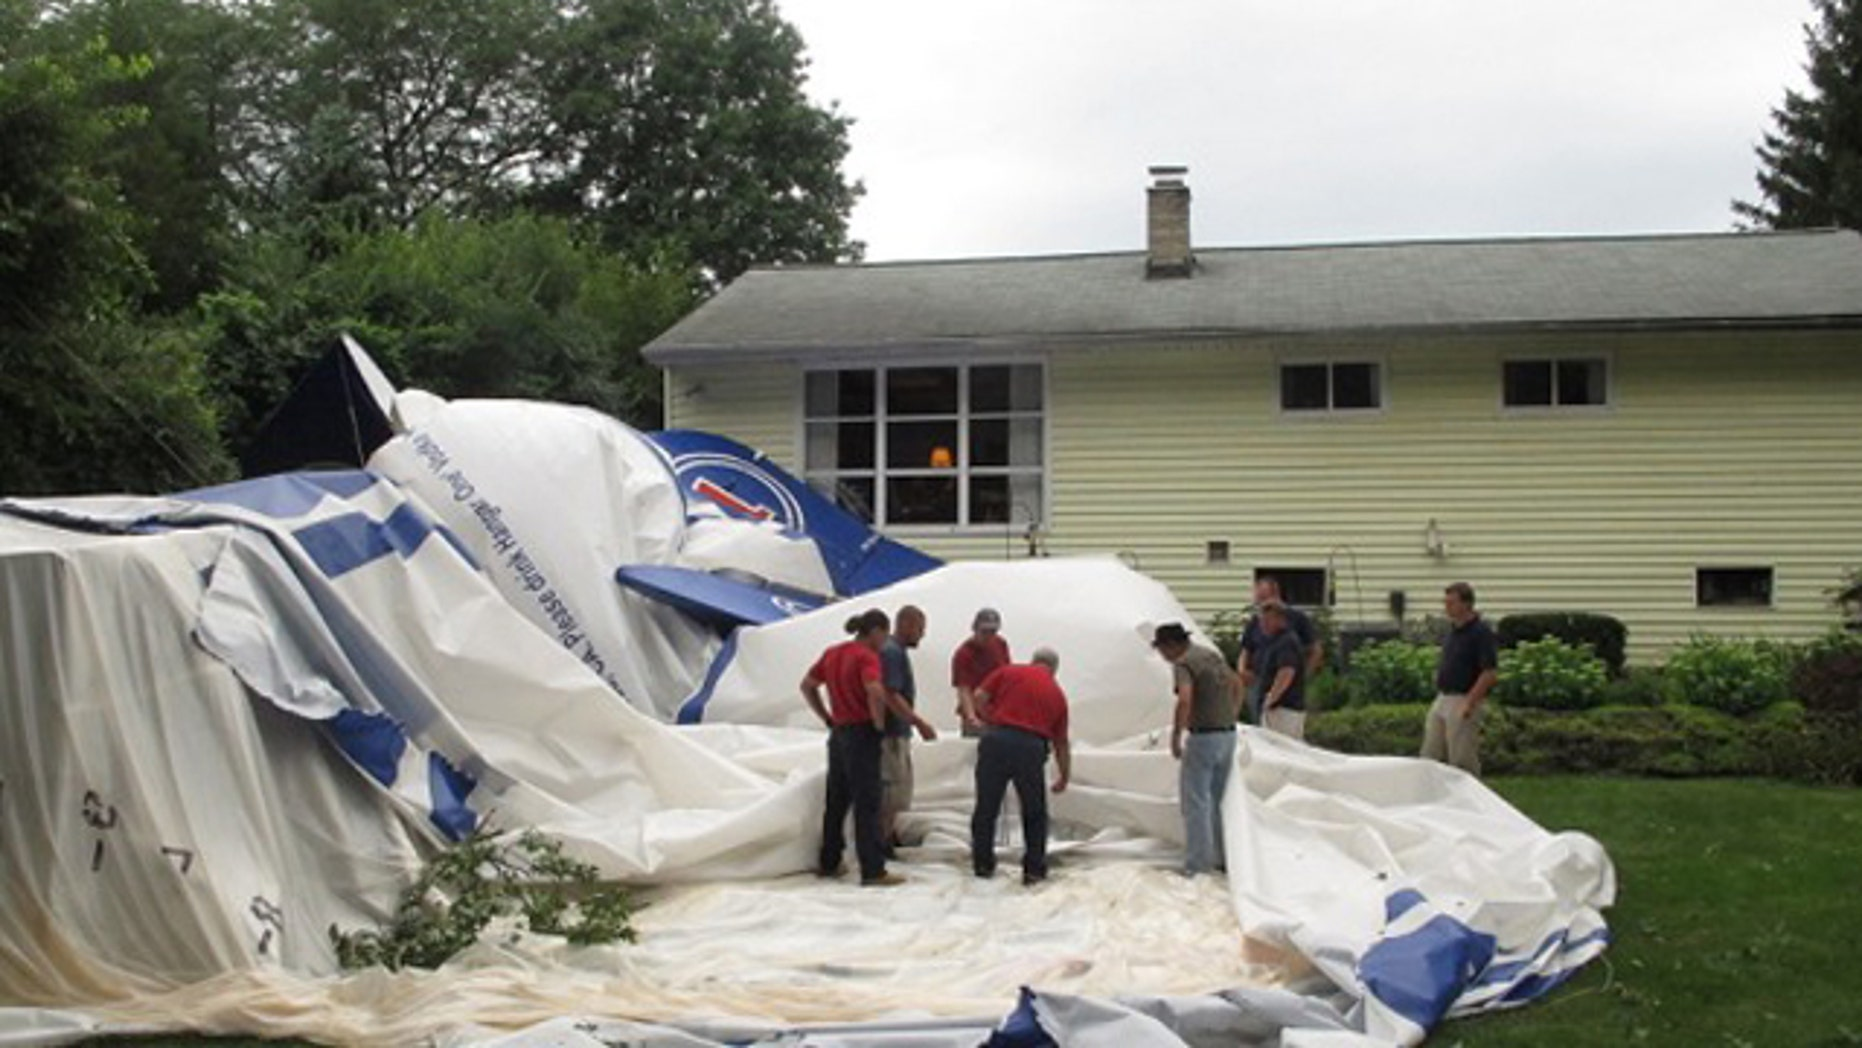 Aug. 14: Crews take apart a blimp that broke free and landed in a backyard.